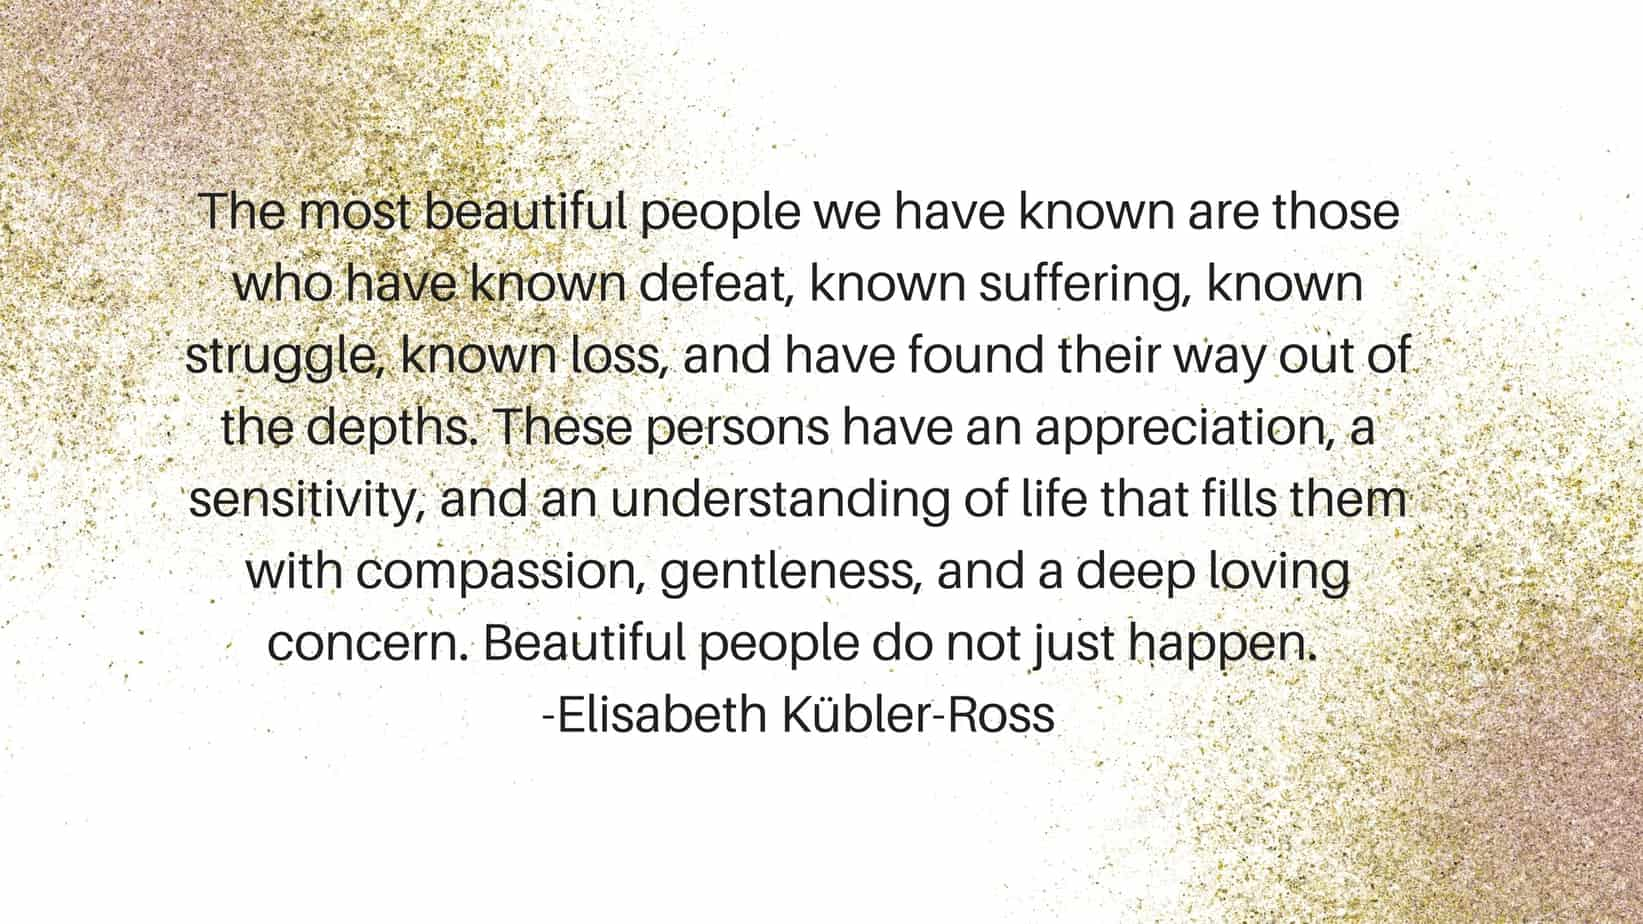 Inspirational Quotes To Help With Depression